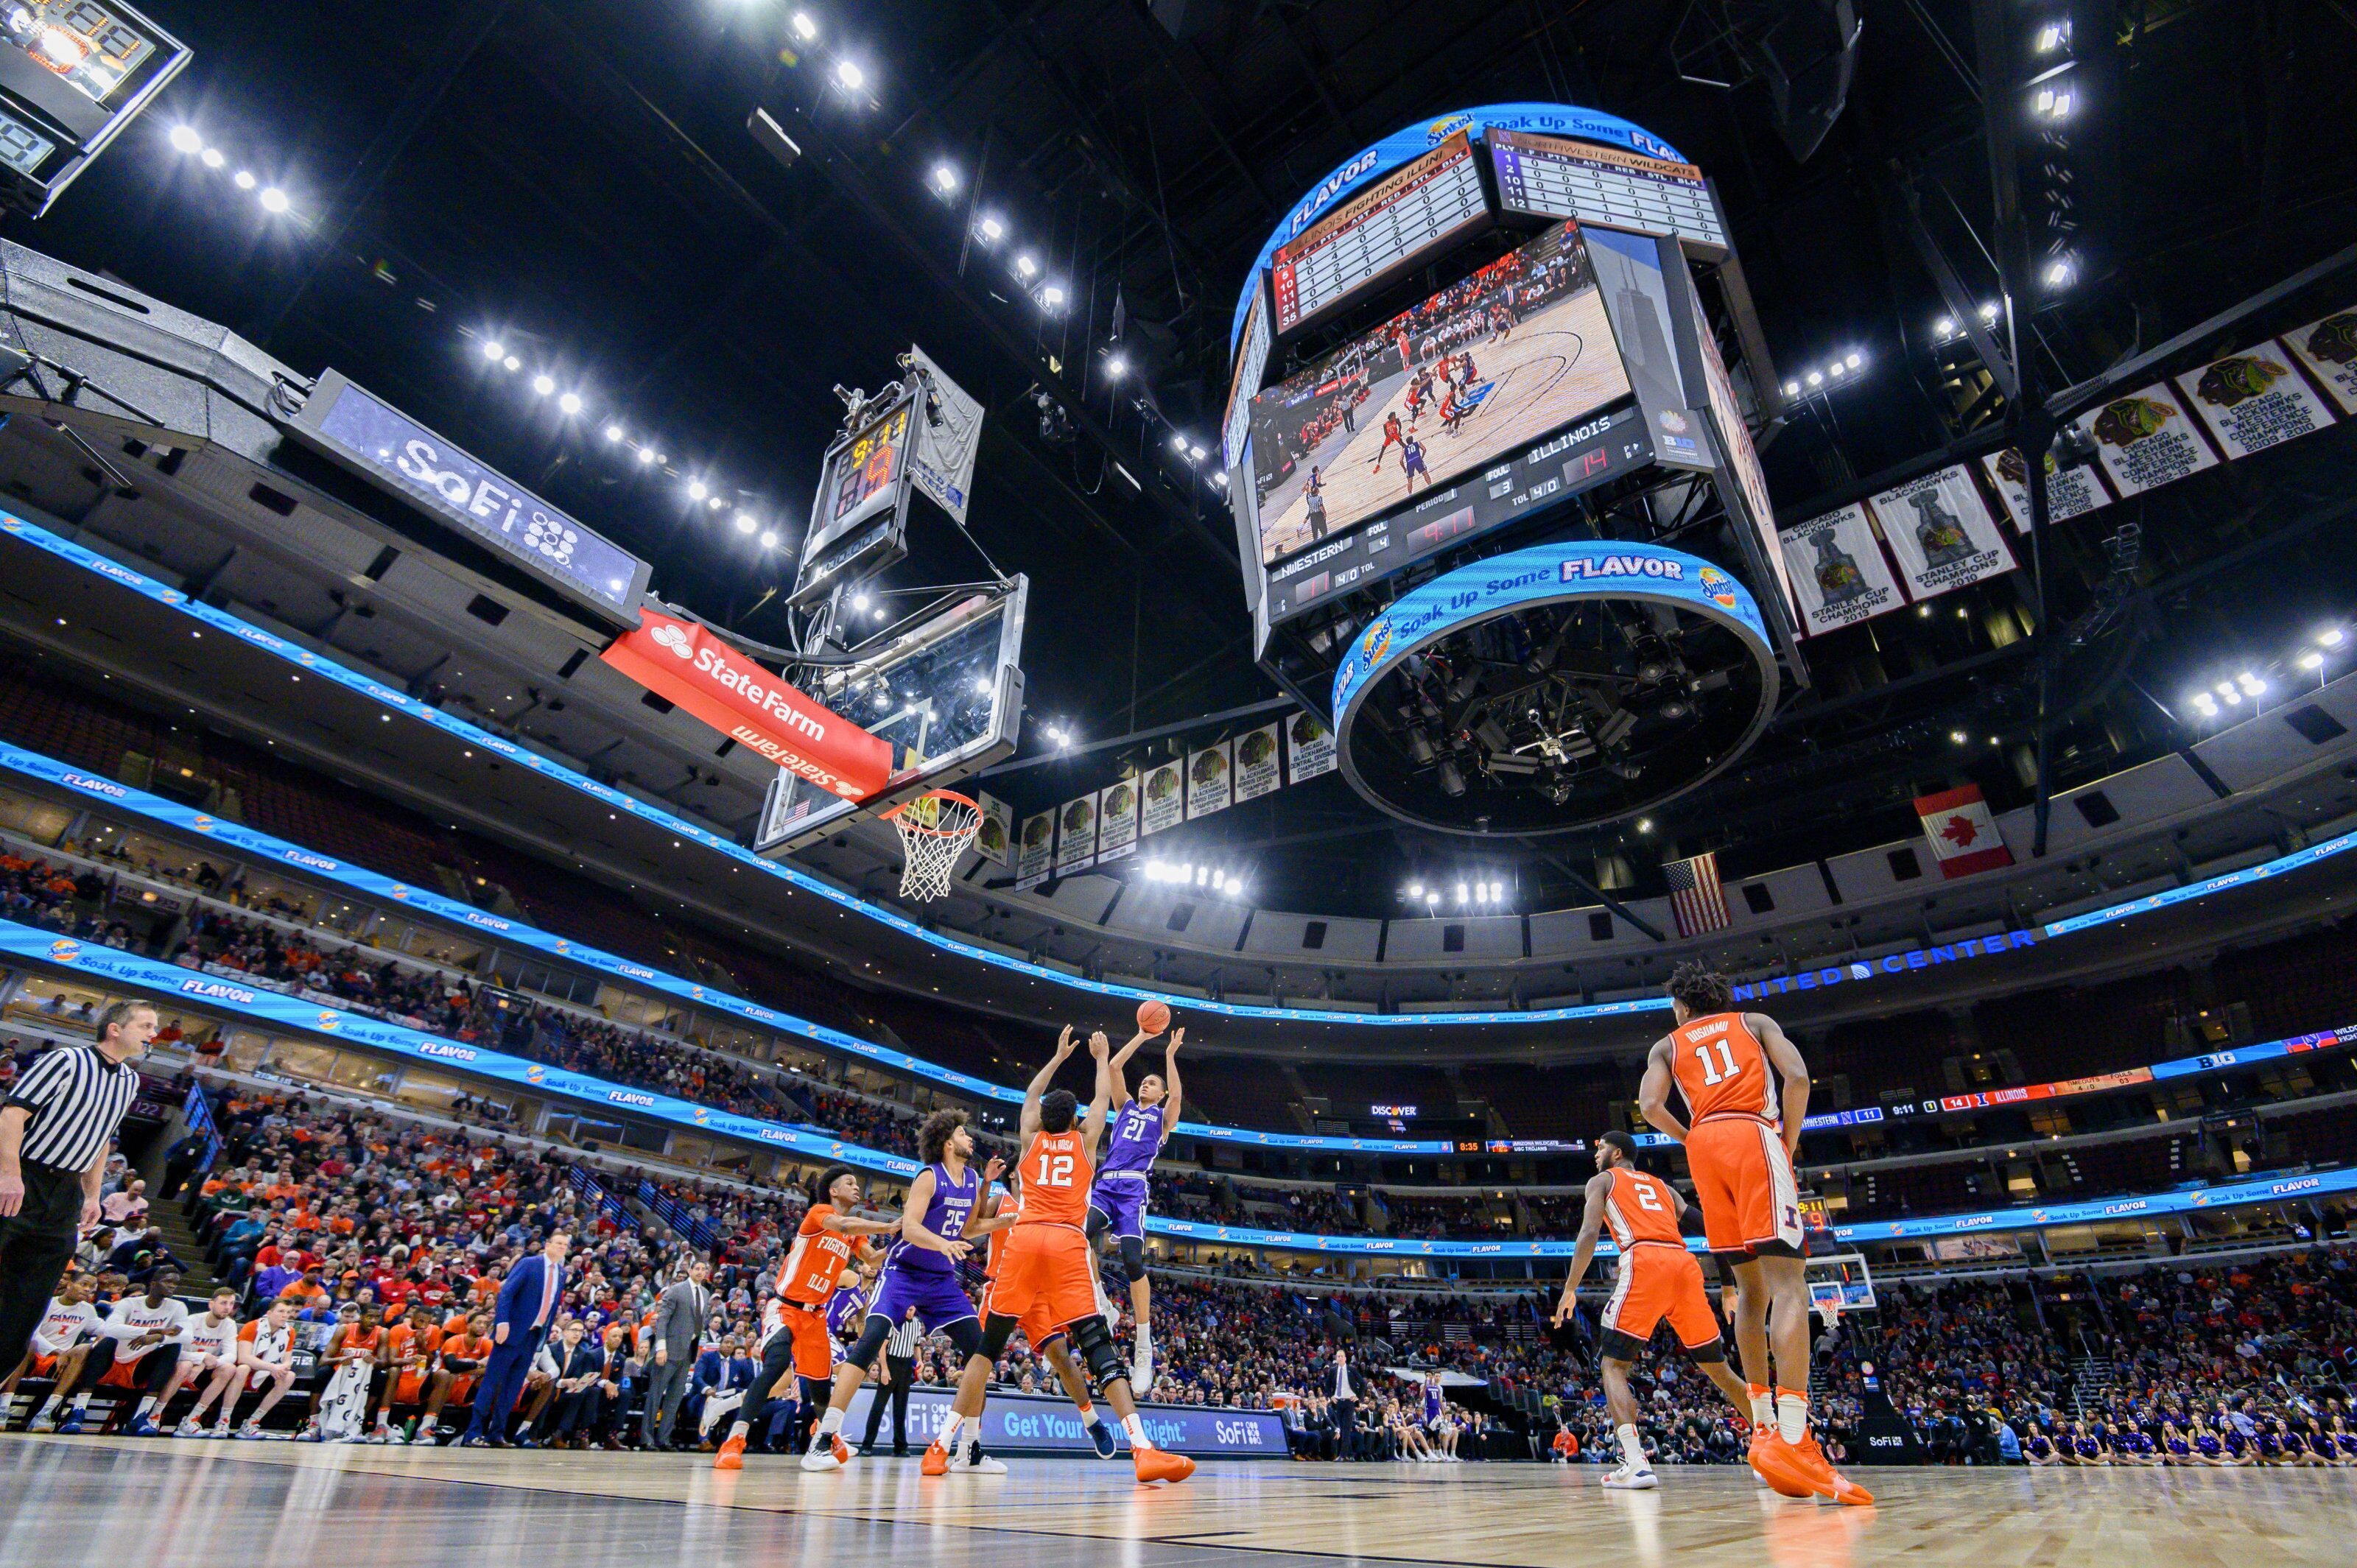 Illinois Basketball: Illini offer 2021 point guard Kennedy Chandler